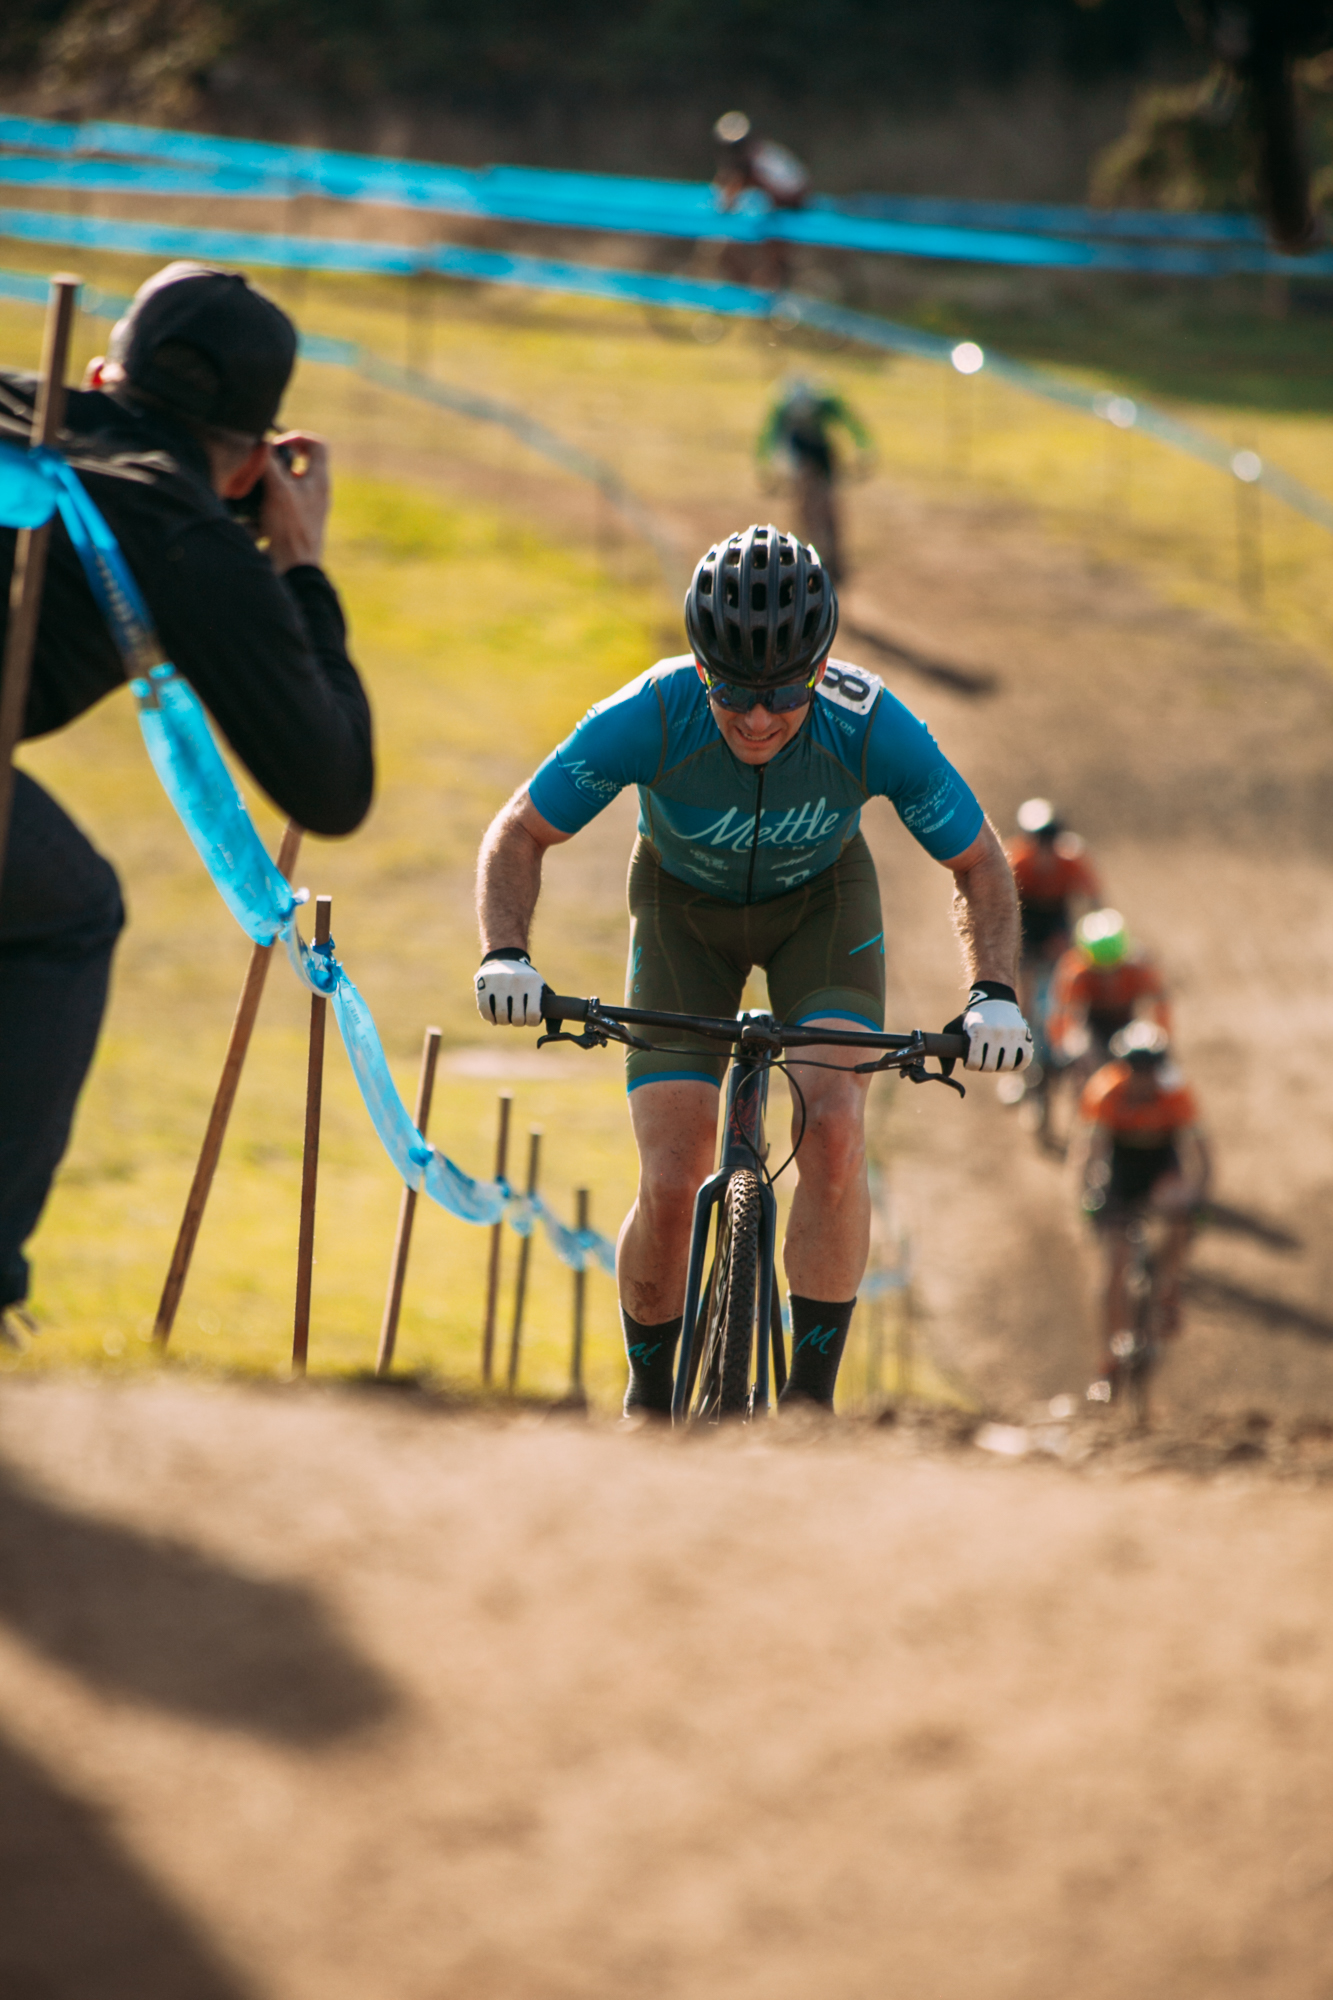 Cyclocross18_CCCX_RainierHS-221-mettlecycling.jpg